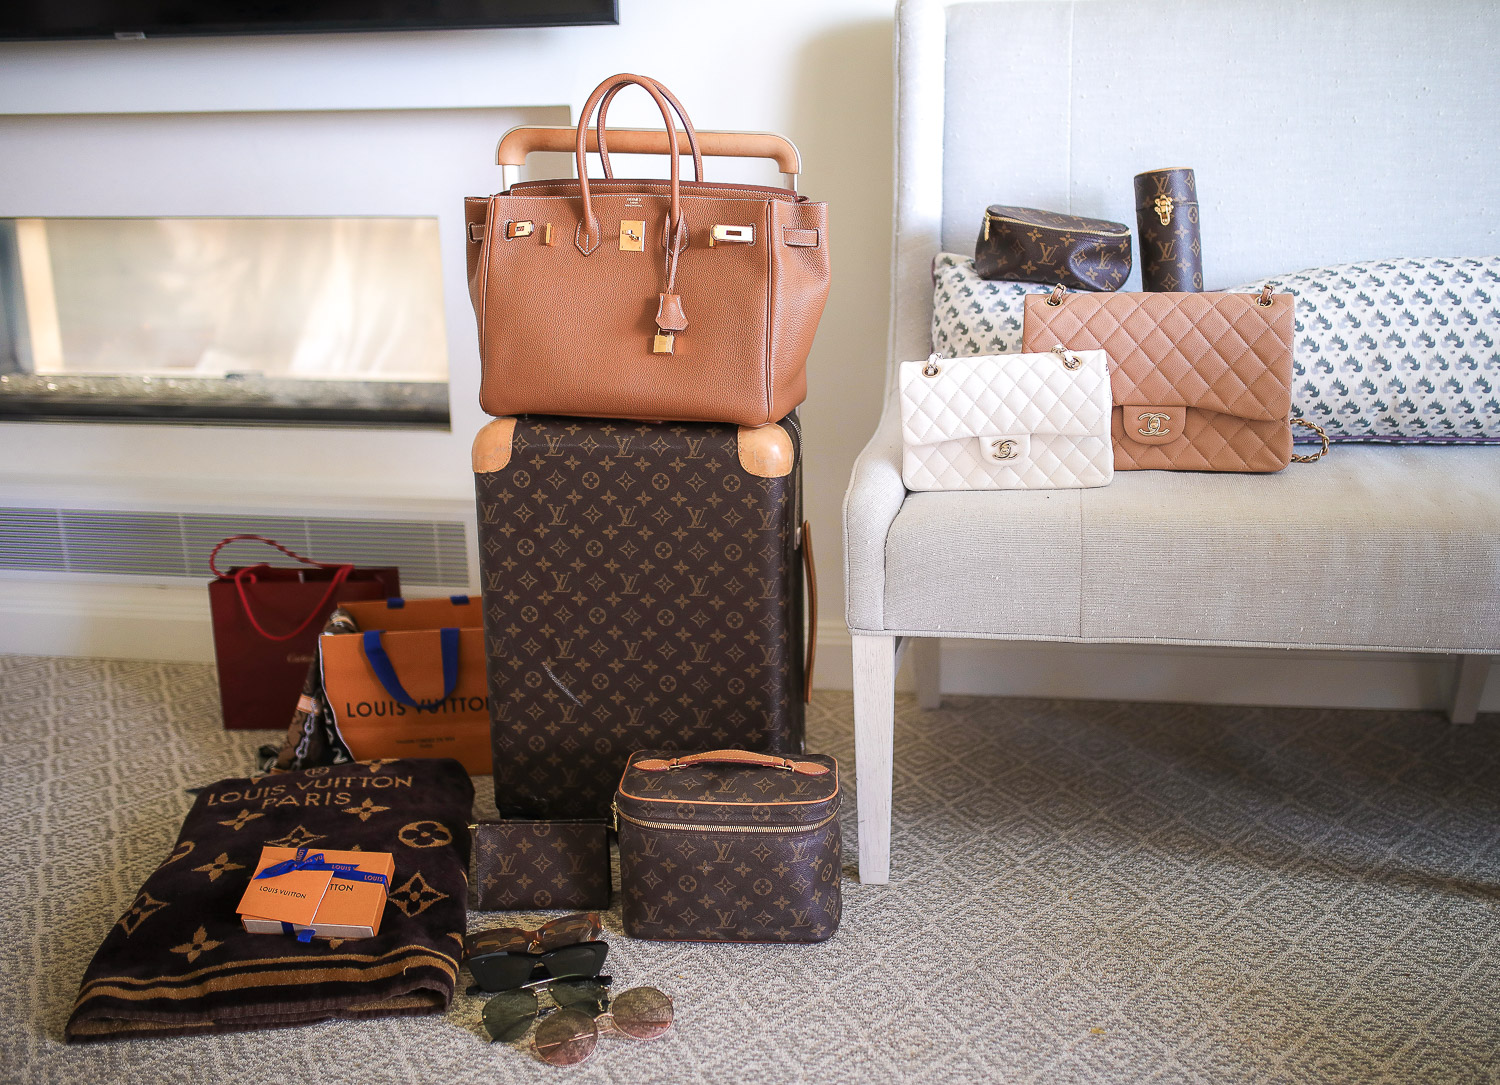 High end designer travel luggage, luxury travel style Pinterest, Louis Vuitton Horizon 55 carry on, Hermes berkin 35 tan gold hardware, montage laguna beach montage beach, riki travel mirror, Travel makeup hacks storage | Travel Hacks by popular life and style blog, The Sweetest Thing: image of Louis Vuitton luggage, Louis Vuitton storage container, Chanel handbags, designer sunglasses, and Louis Vuitton blanket.